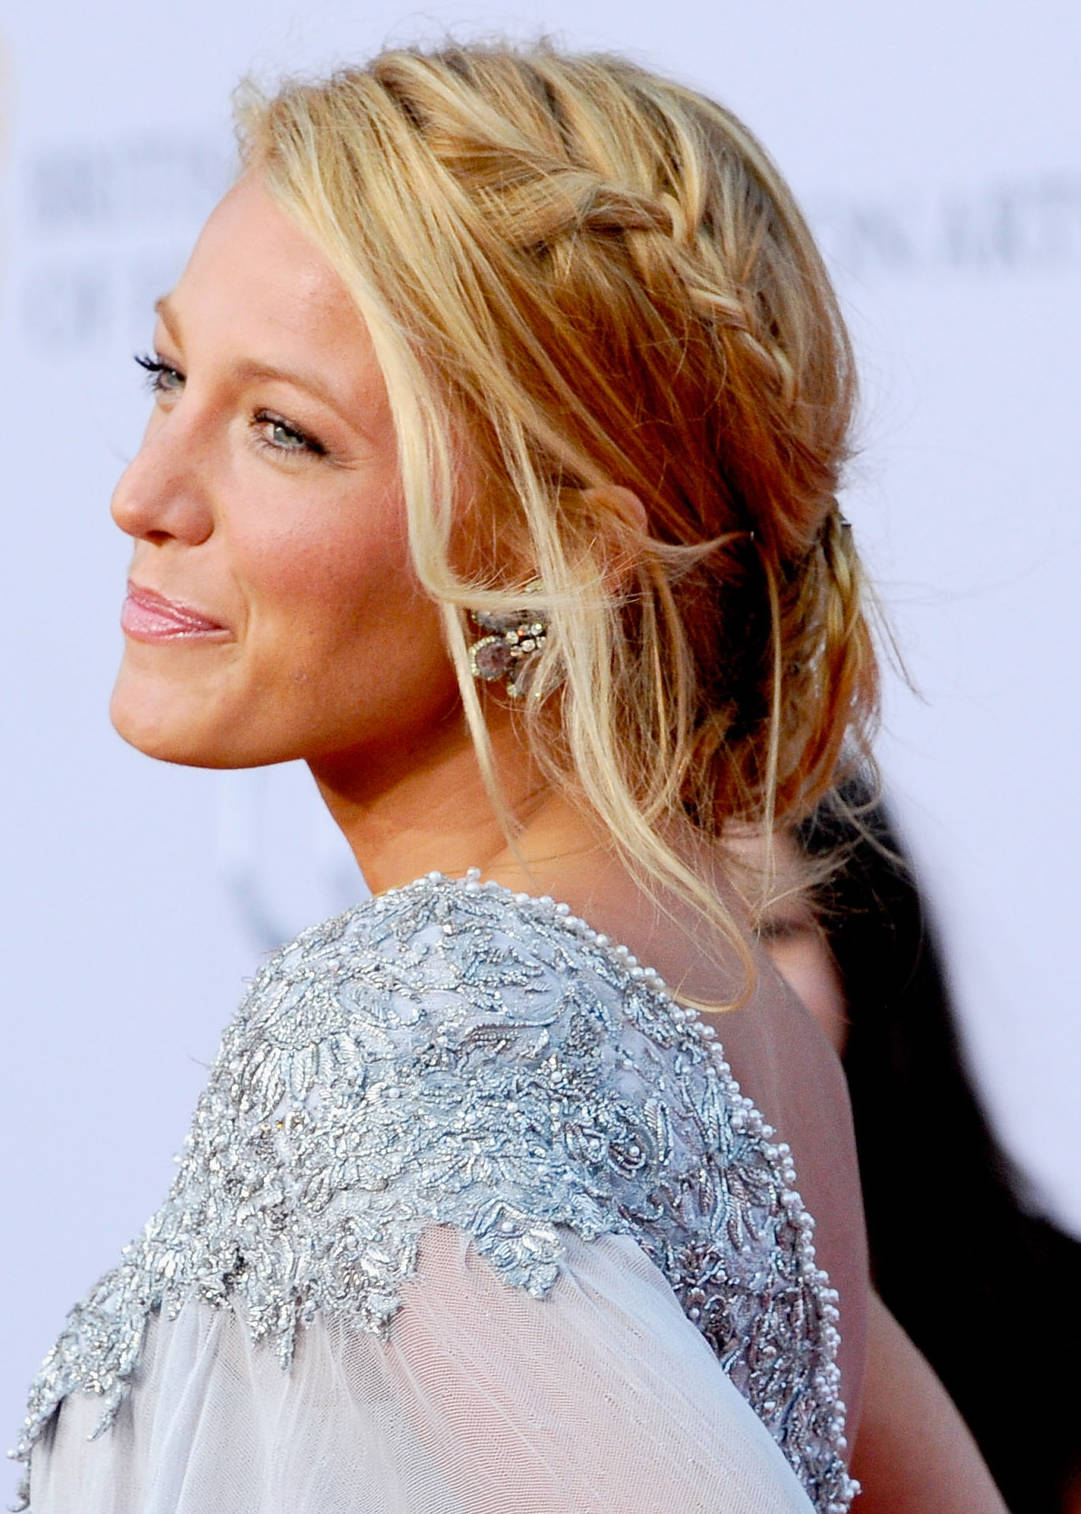 Blake Lively Romantic Wavy Hairstyles Hairstyles And Fashion